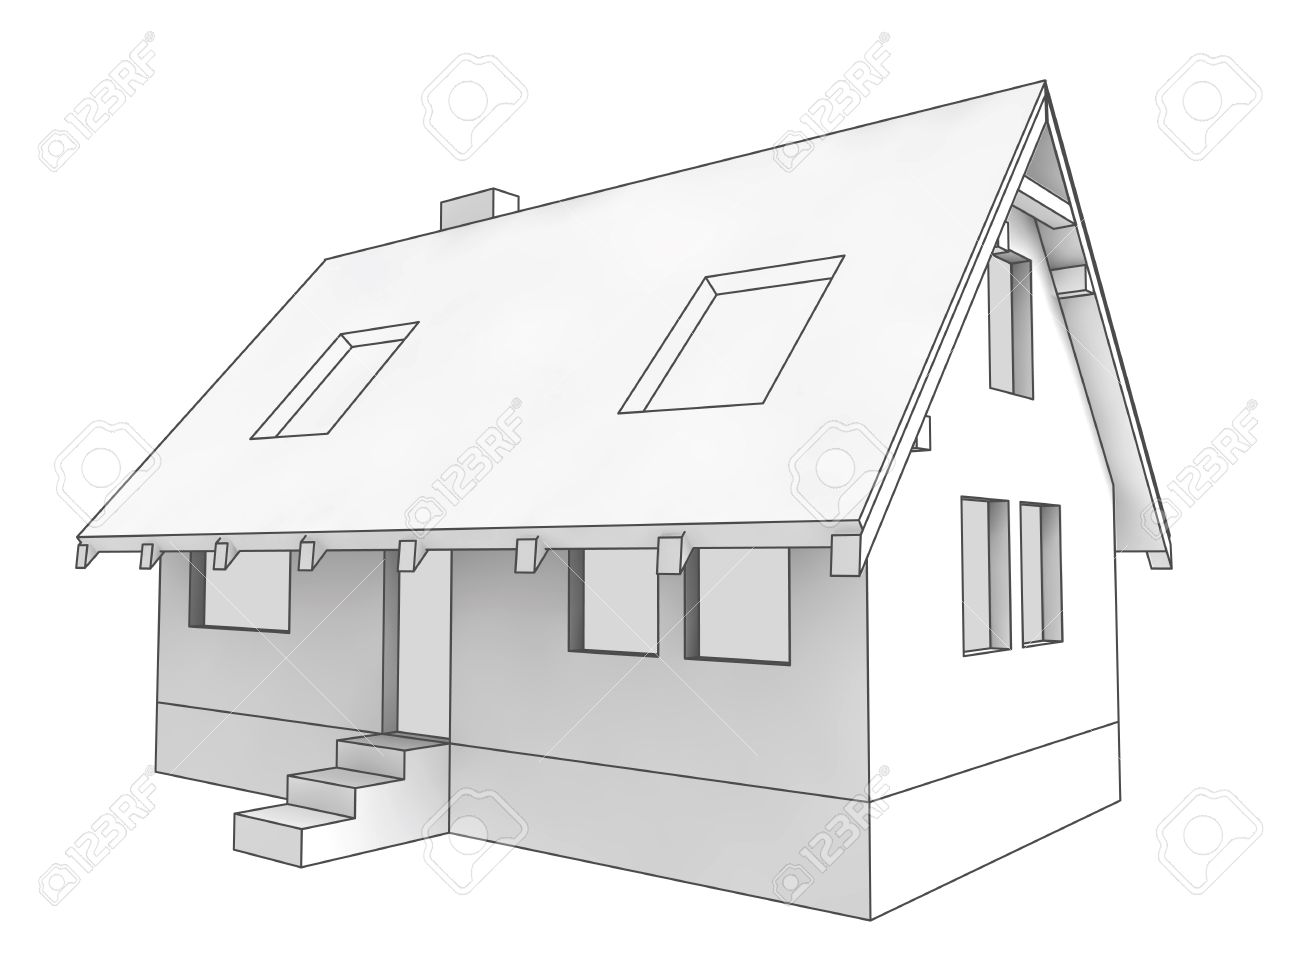 15503273 isolated diagram icon of new private house project illustration Stock Illustration isolated diagram icon of new private house project illustration house diagram at cos-gaming.co